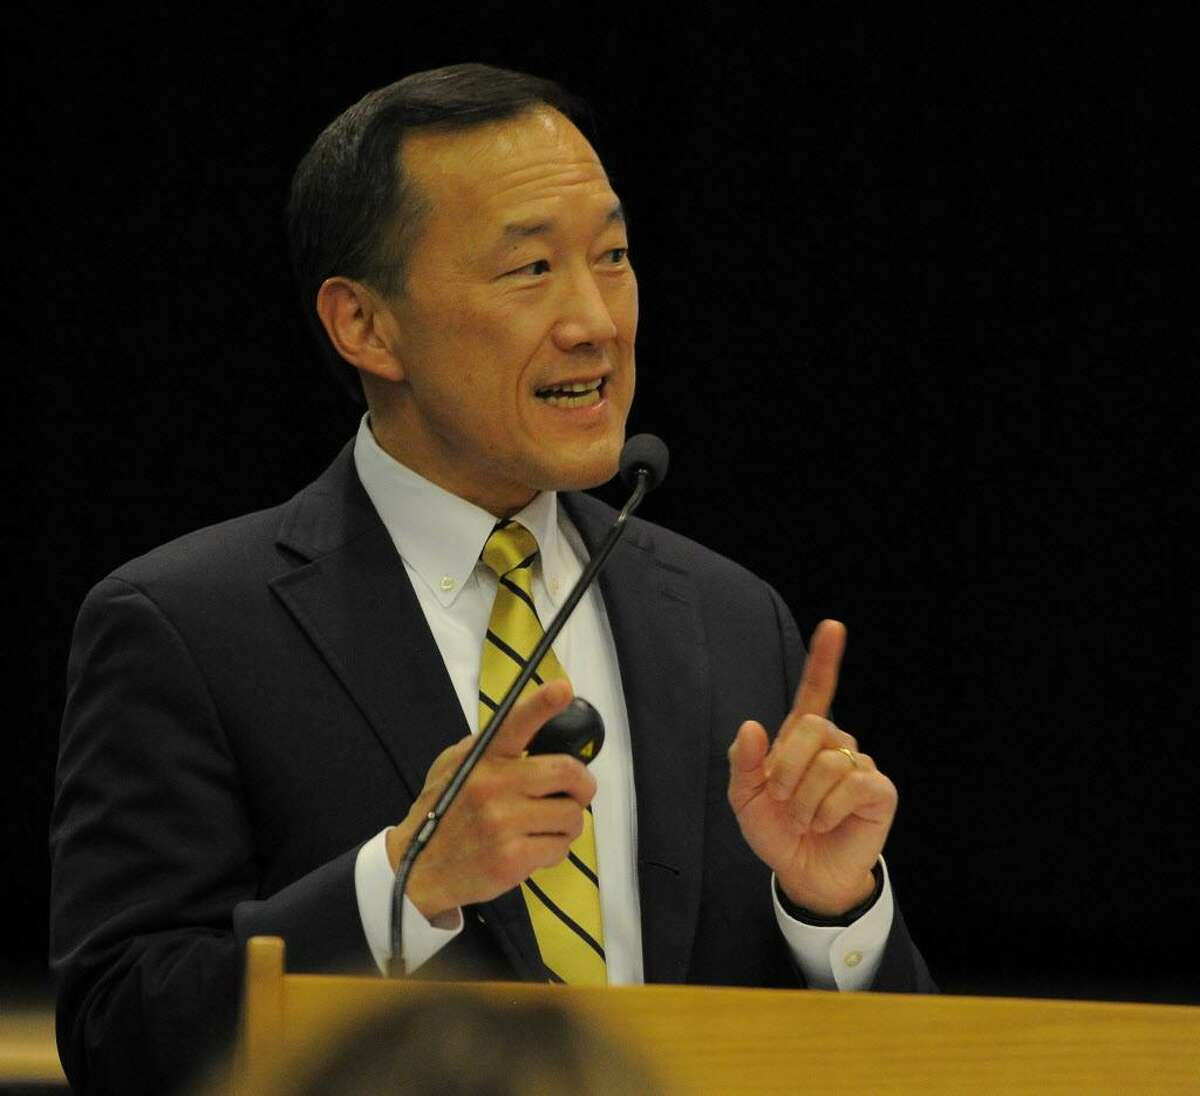 Dr. Earl Kim, Superintendent of Stamford Schools presents an over view of his proposed budget during a Stamford Schools Board of Education public hearing at Westover Magnet Elementary School in Stamford on Feb. 7, 2017. City taxpayers had a chance to weigh in on Kim's $273.4 million operating budget request.